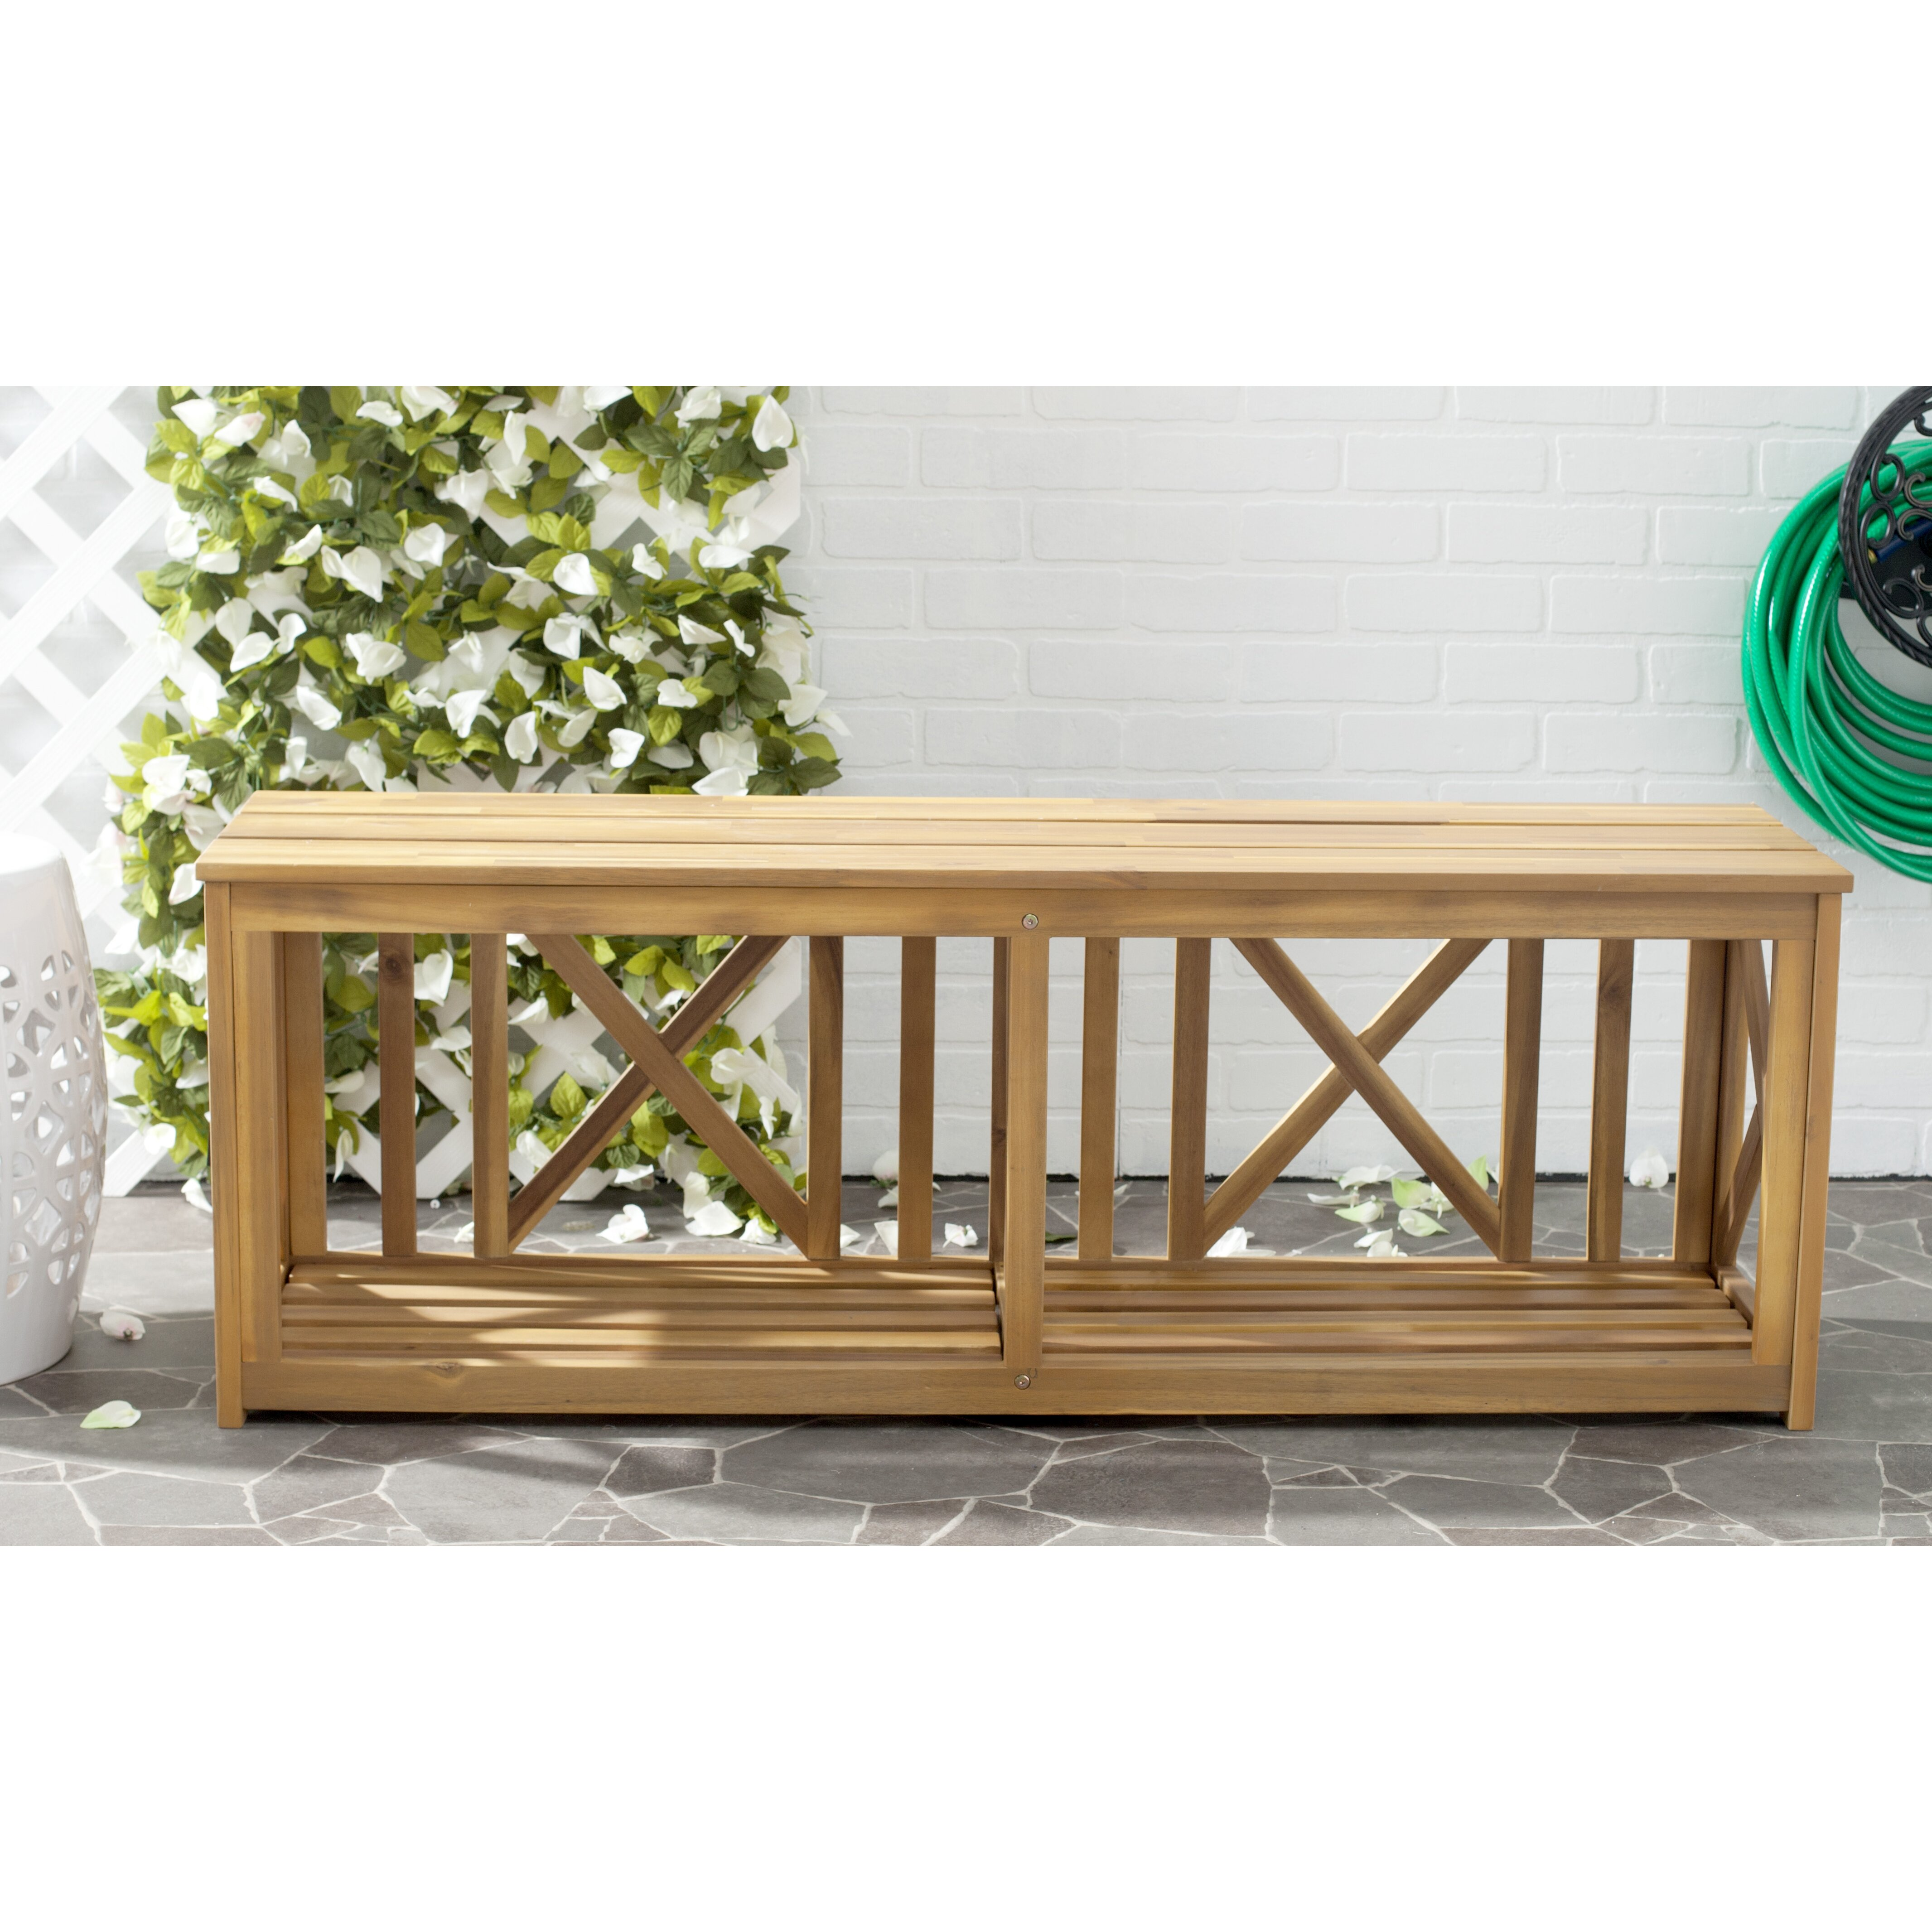 Beachcrest Home Indian Shores Wood Garden Bench Reviews